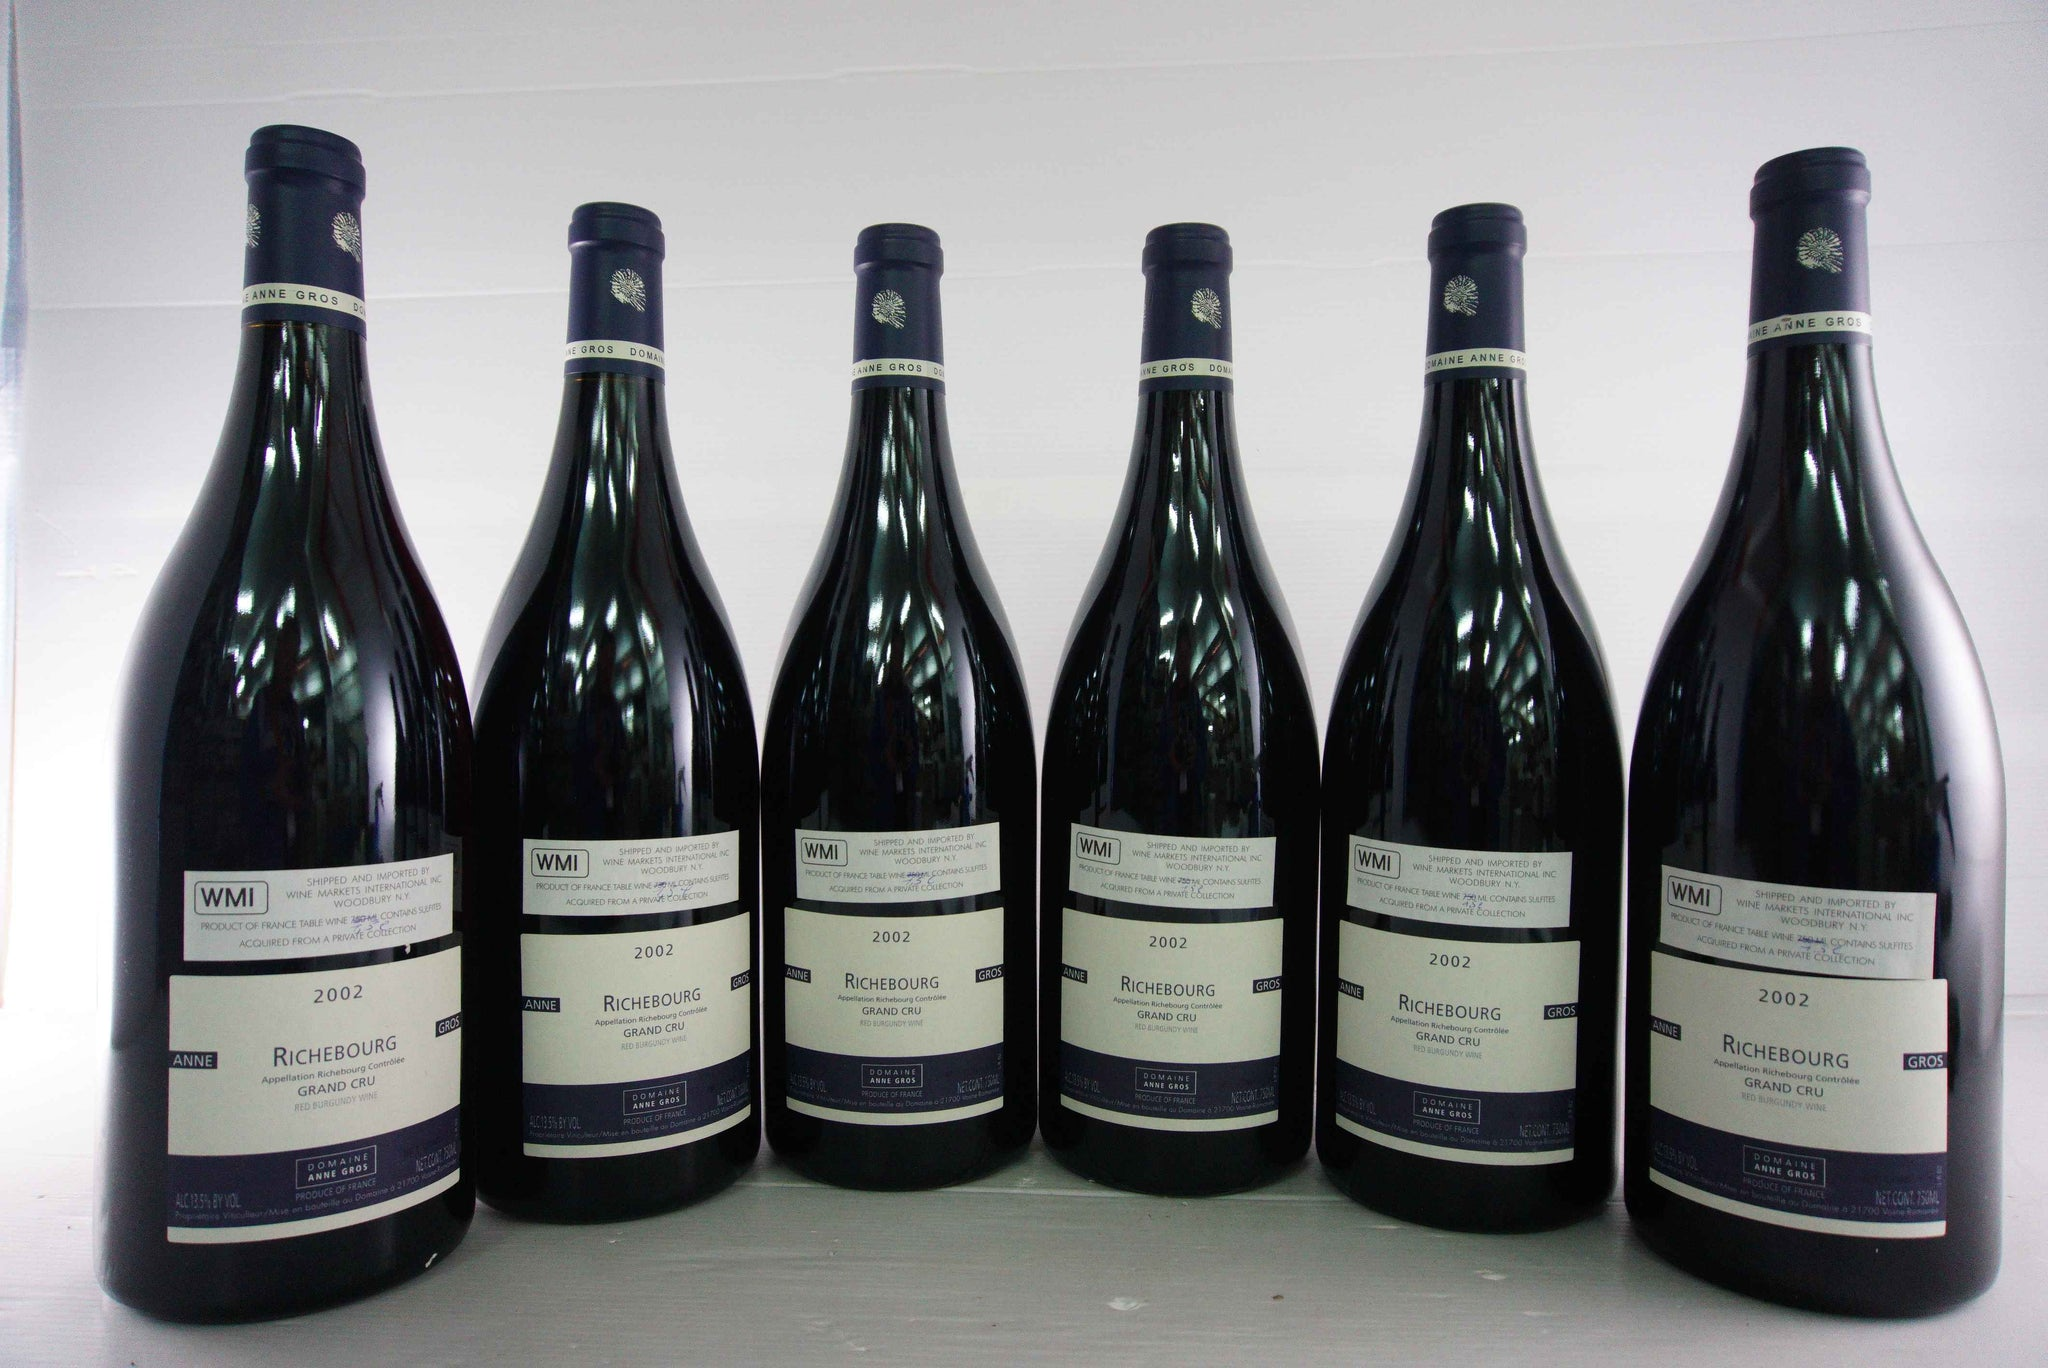 Anne Gros Richebourg Grand Cru Magnum 2002